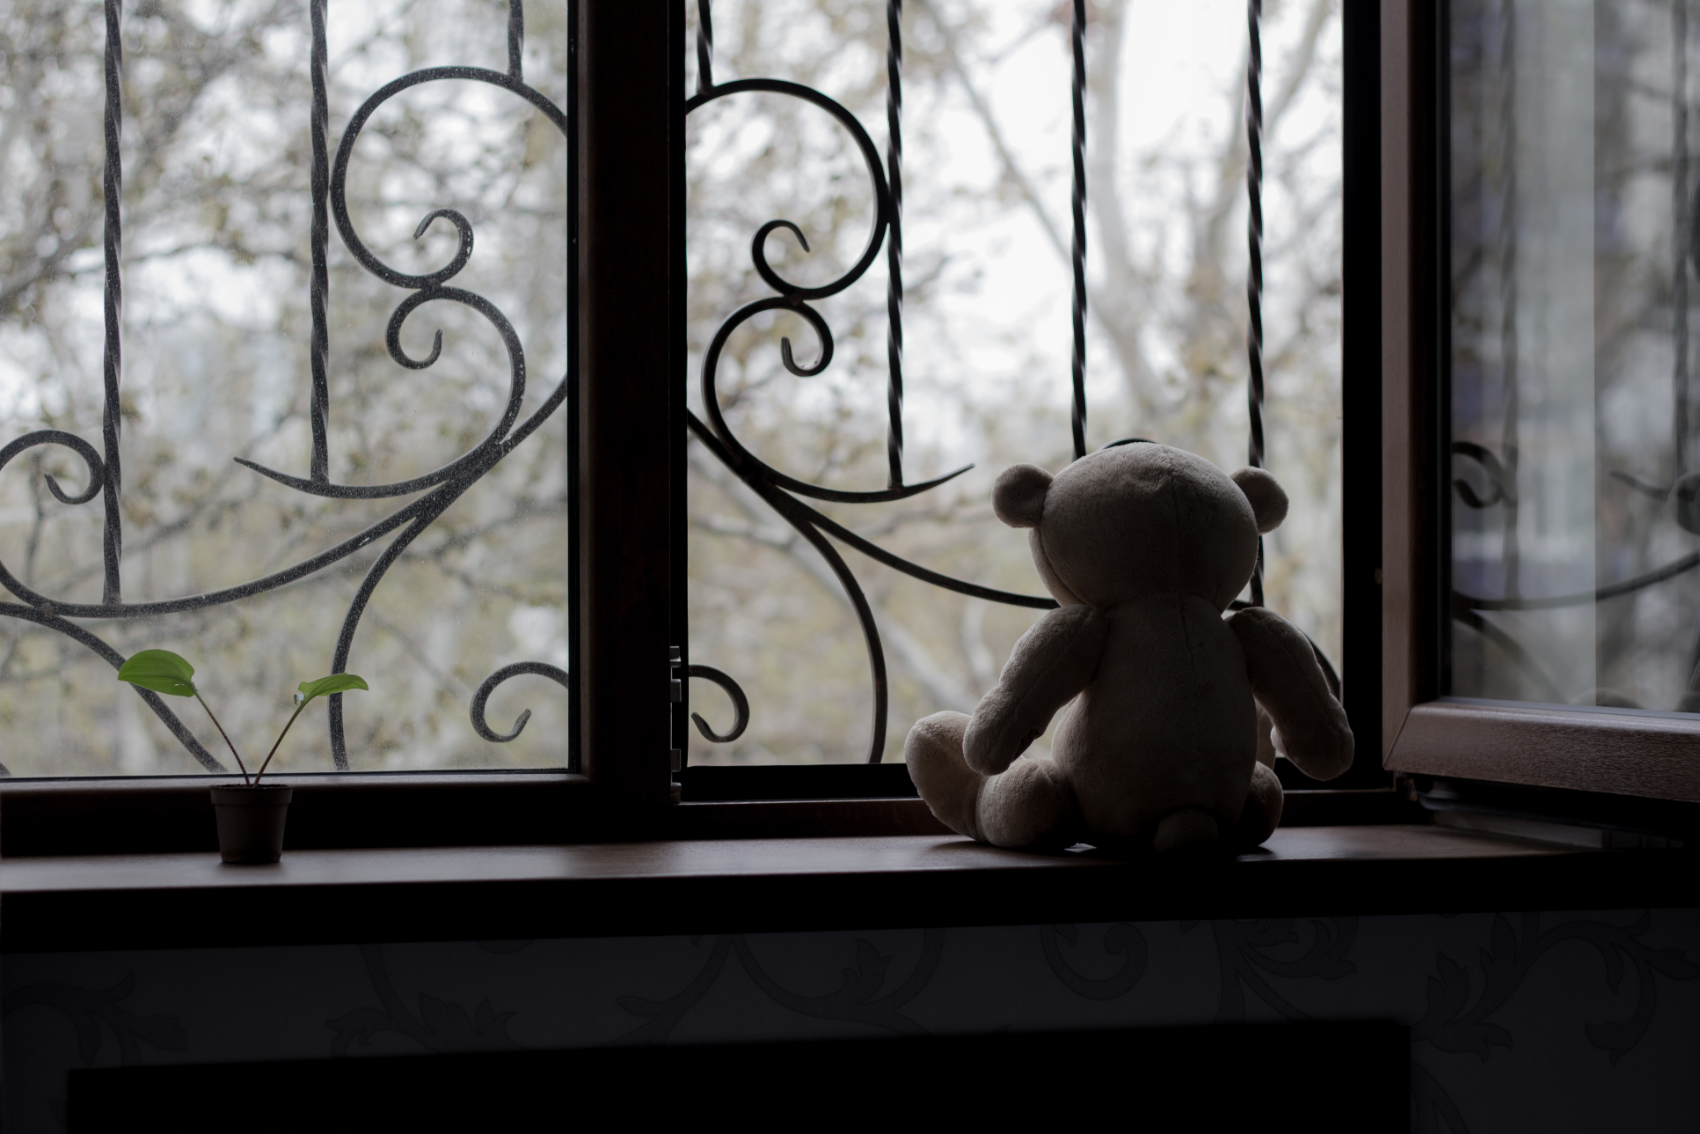 Discovering MErcy_Patricia's Testimony_Teddy Bear Looking Outside Gated Window